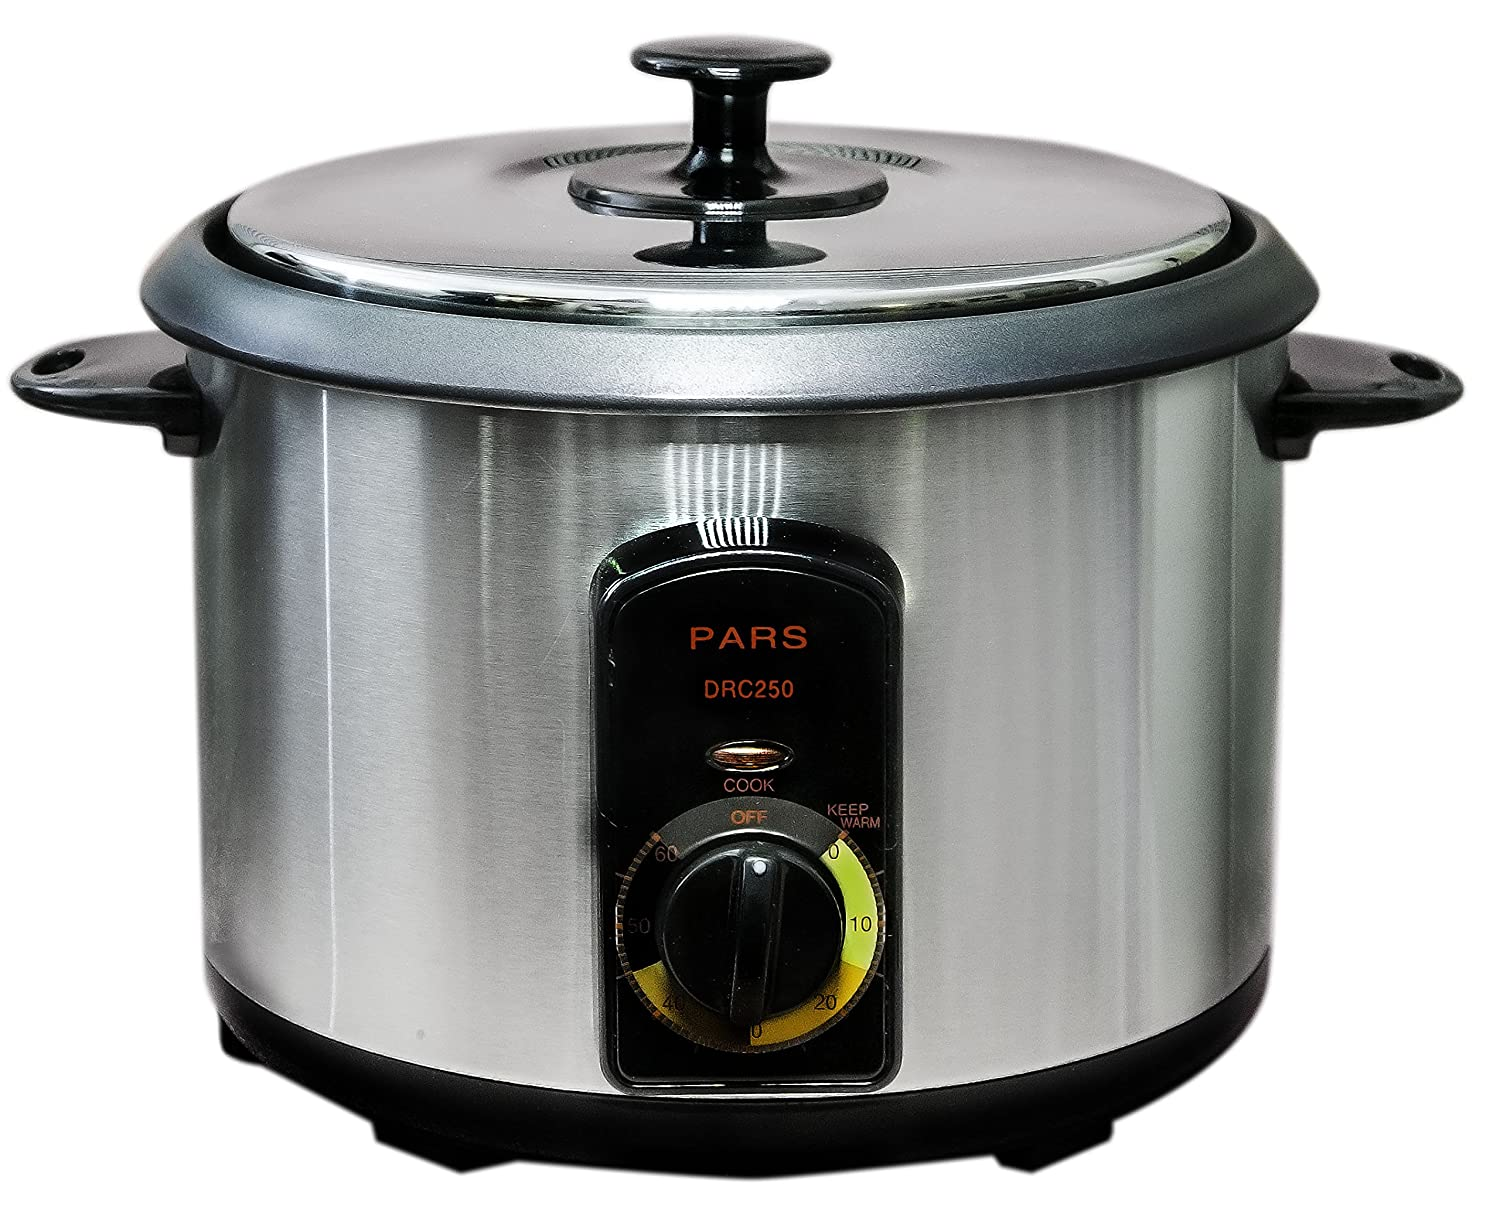 Pars Automatic Persian Rice Cooker (15 Cup)